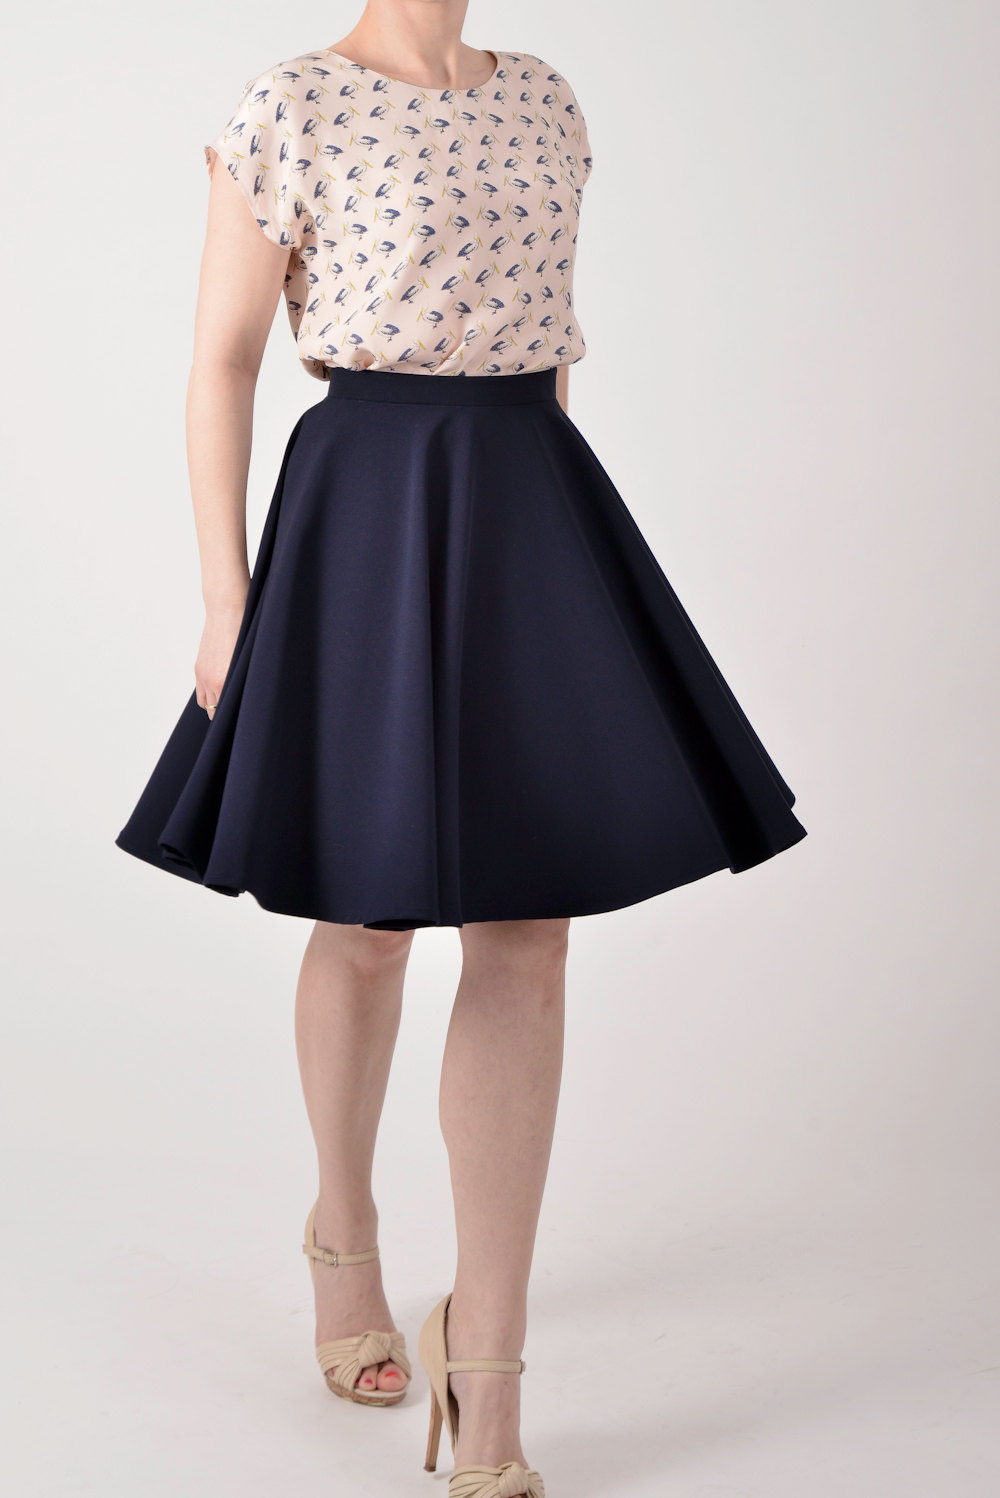 Advantages of Wearing Circle Skirts